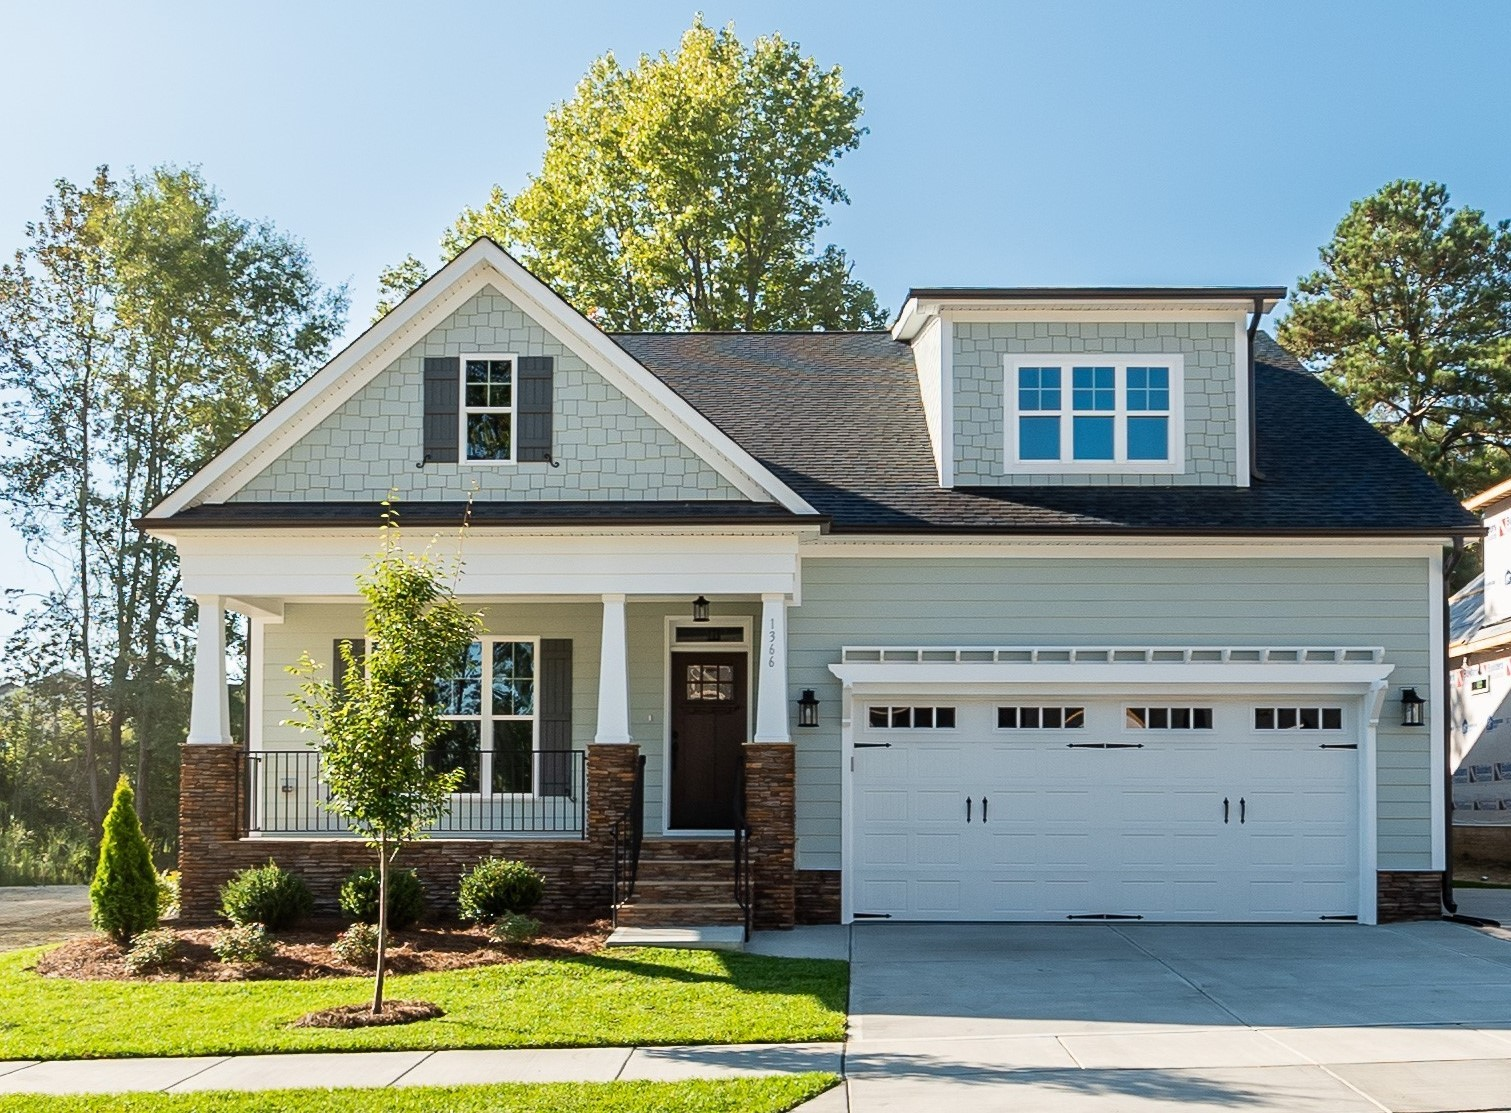 Cornerstone Homes, LLC | New Home Builders | New Home Guide on home bathroom plans, home architecture, group home plans, house plans, home furniture, home hardware plans, home design, family home plans, home apartment plans, 2012 most popular home plans, country kitchen home plans, energy homes plans, michael daily home plans, designing home plans, home roof plans, home security plans, home lighting plans, home plans 1940, home building, garage plans,